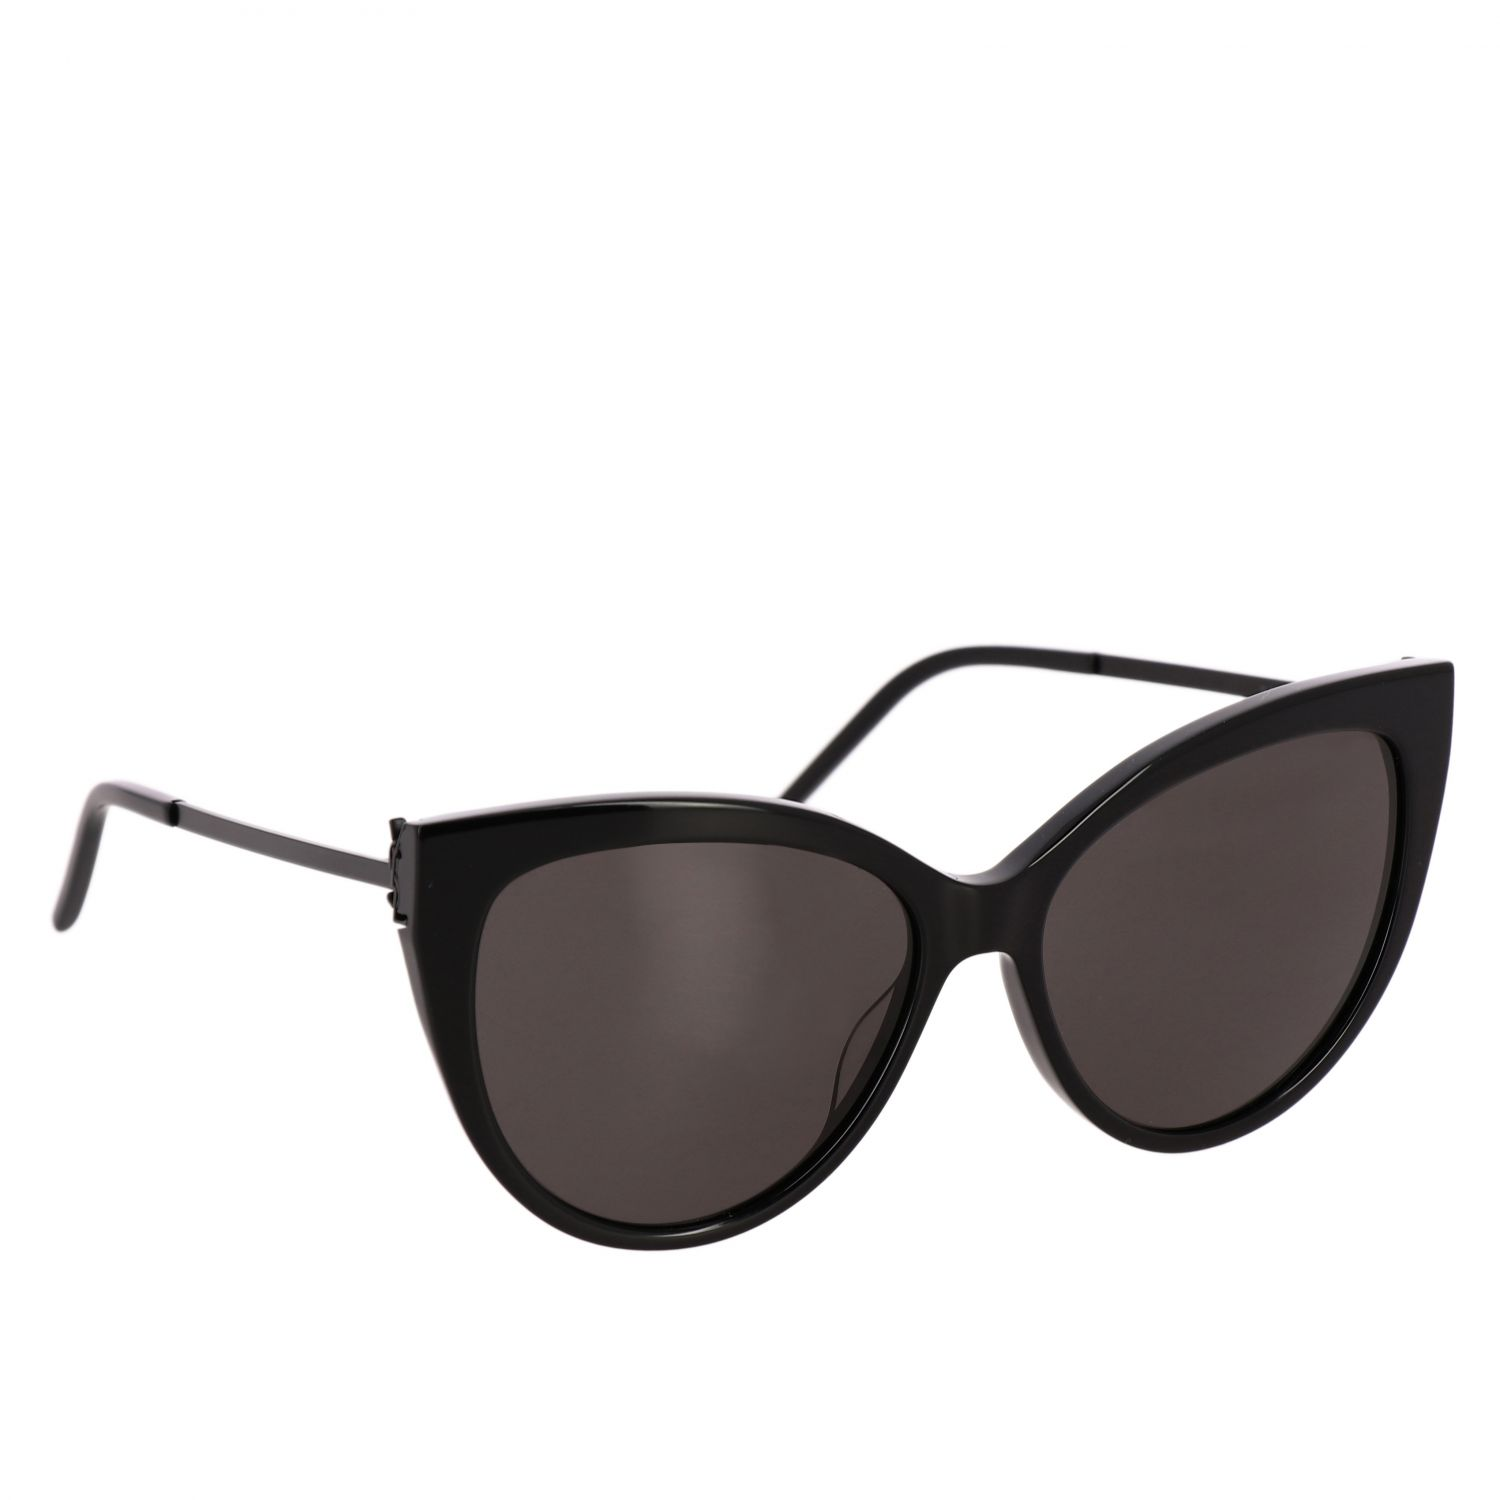 Glasses women Saint Laurent black 1